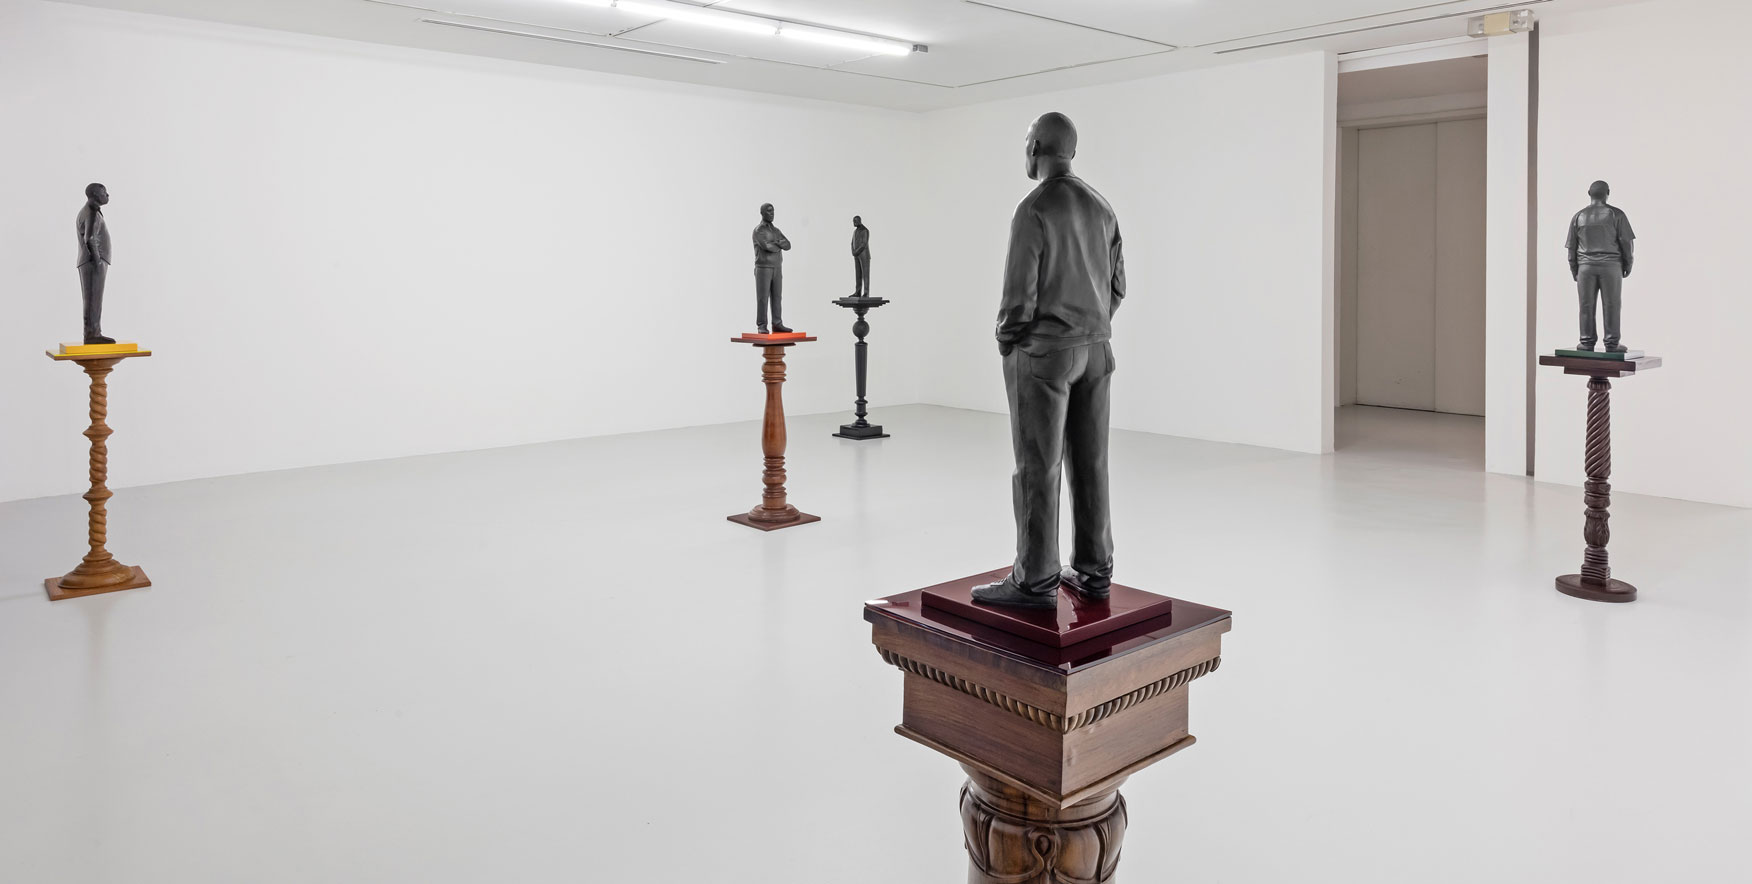 Brass statues of people standing on pedestals throughout an all white room.